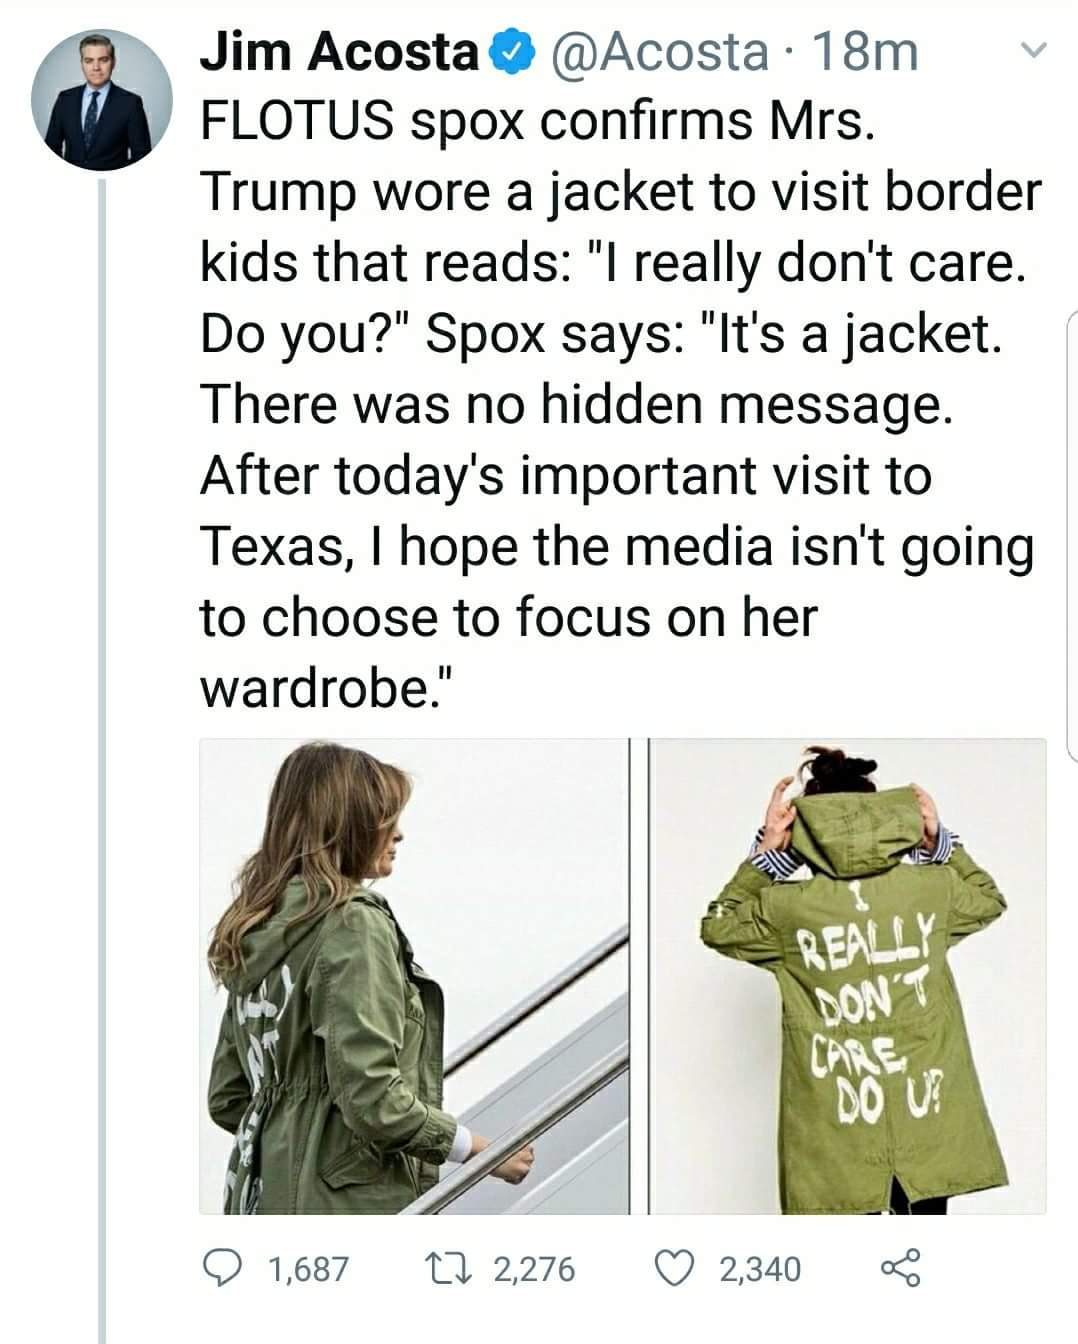 """95d9956e7 The First Lady's army-green jacket with a painted design on the back  reading """"I REALLY DON'T CARE DO U?"""" quickly became the dominant topic of  news and ..."""